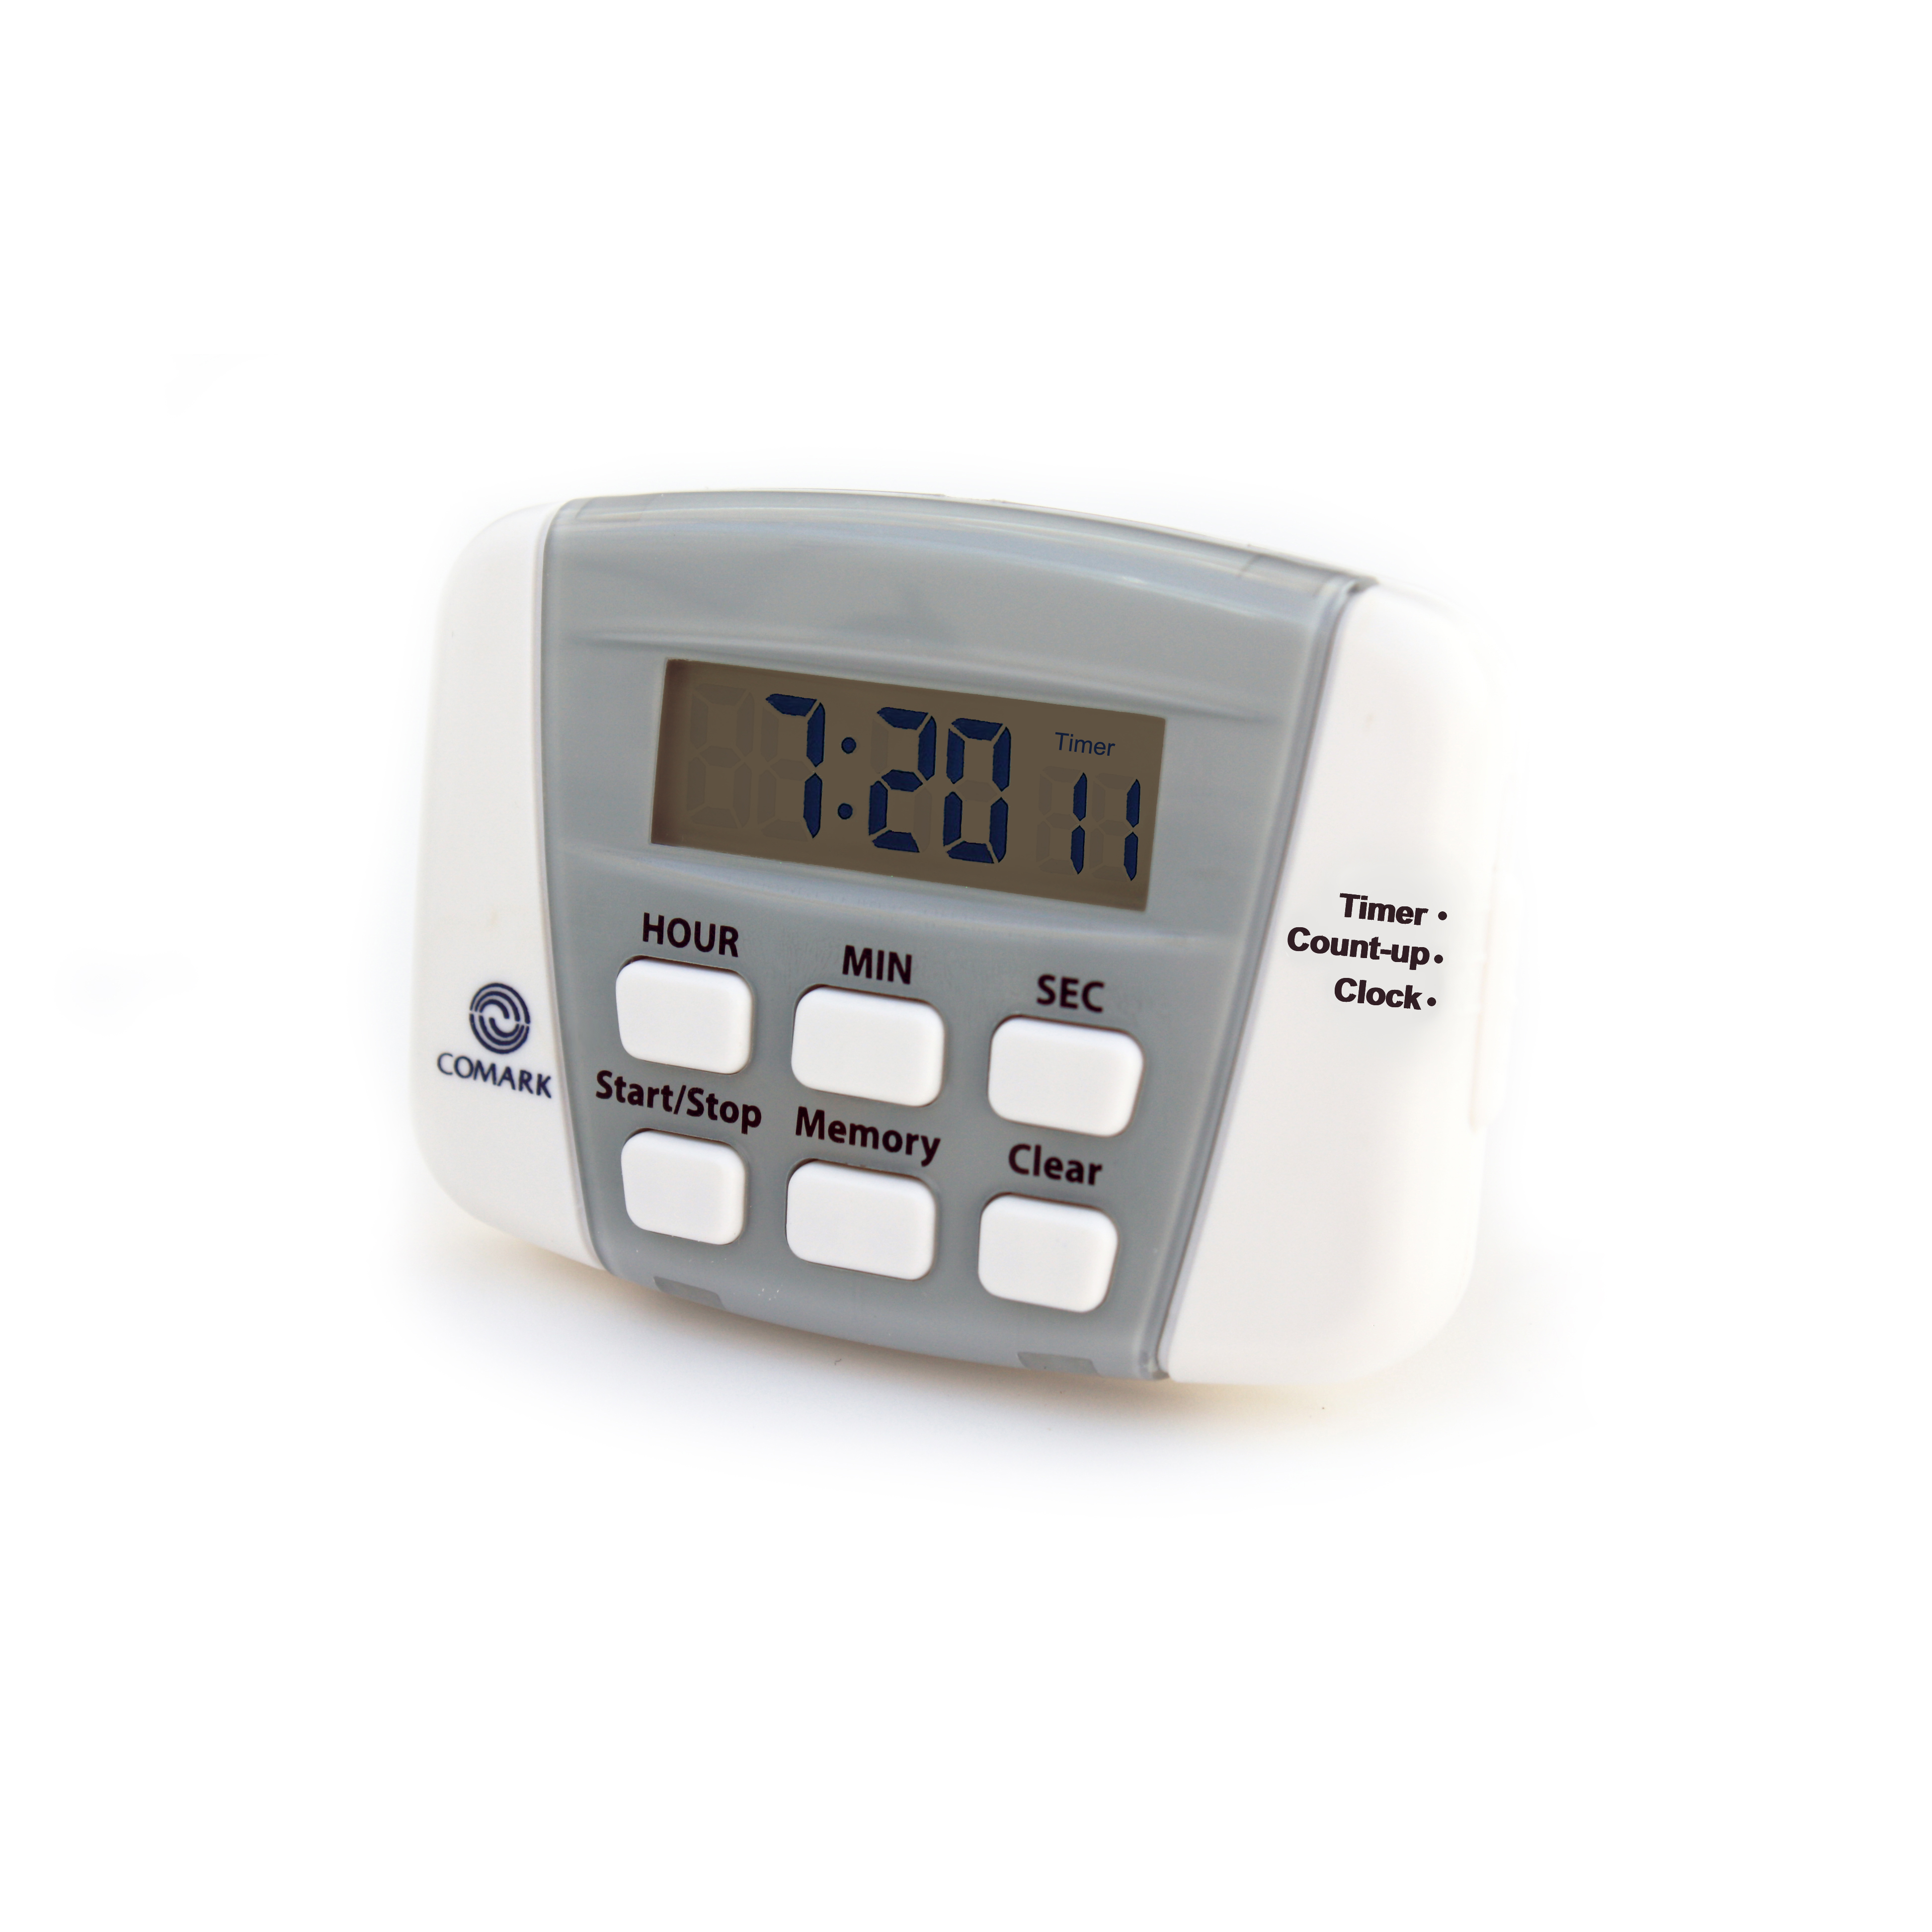 Kitchen Clock and Timer UTL882 from Comark